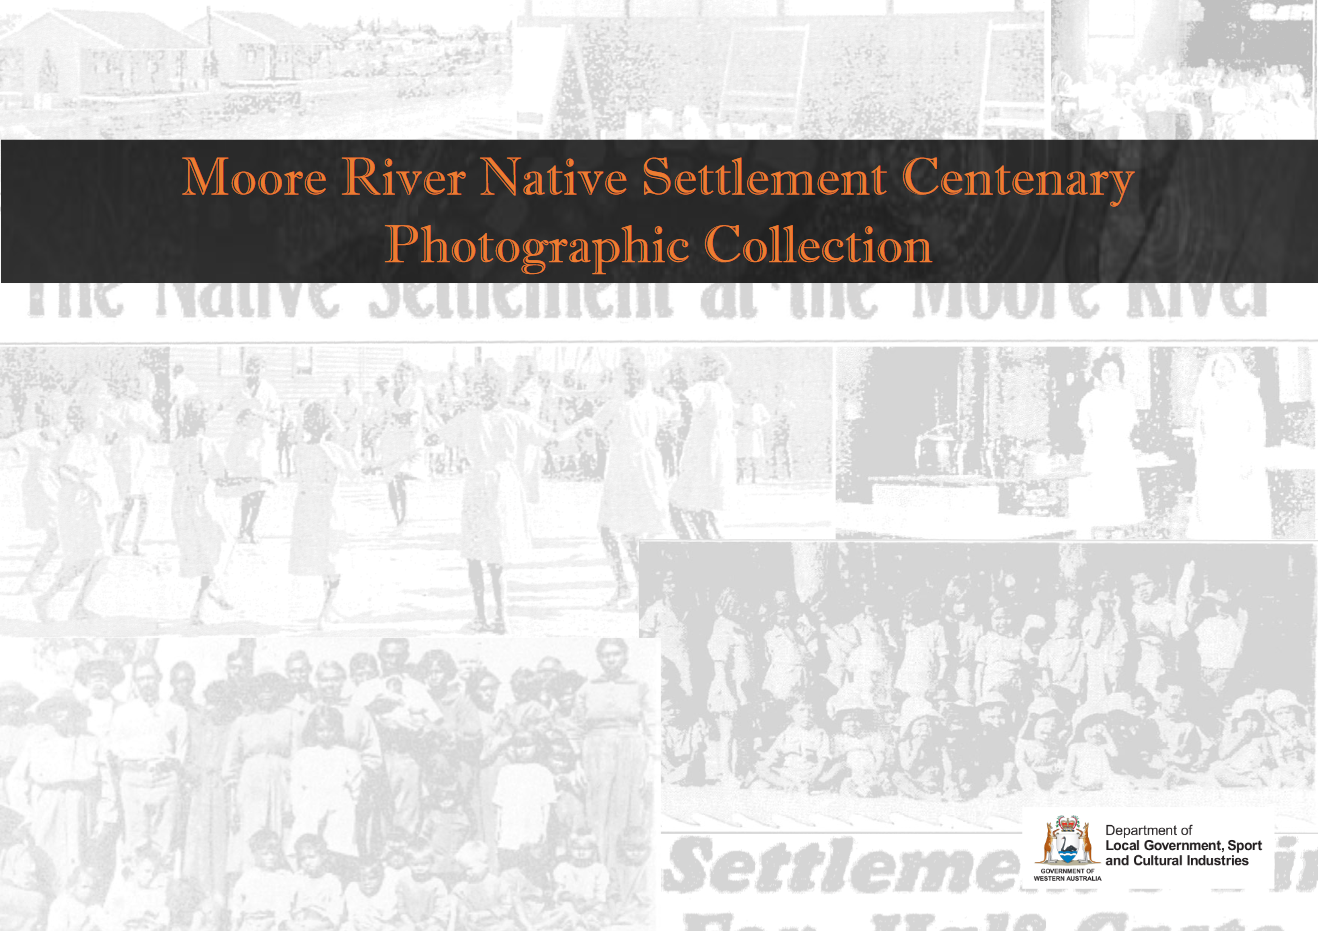 Moore River Native Settlement Centenary Photographic Collection cover